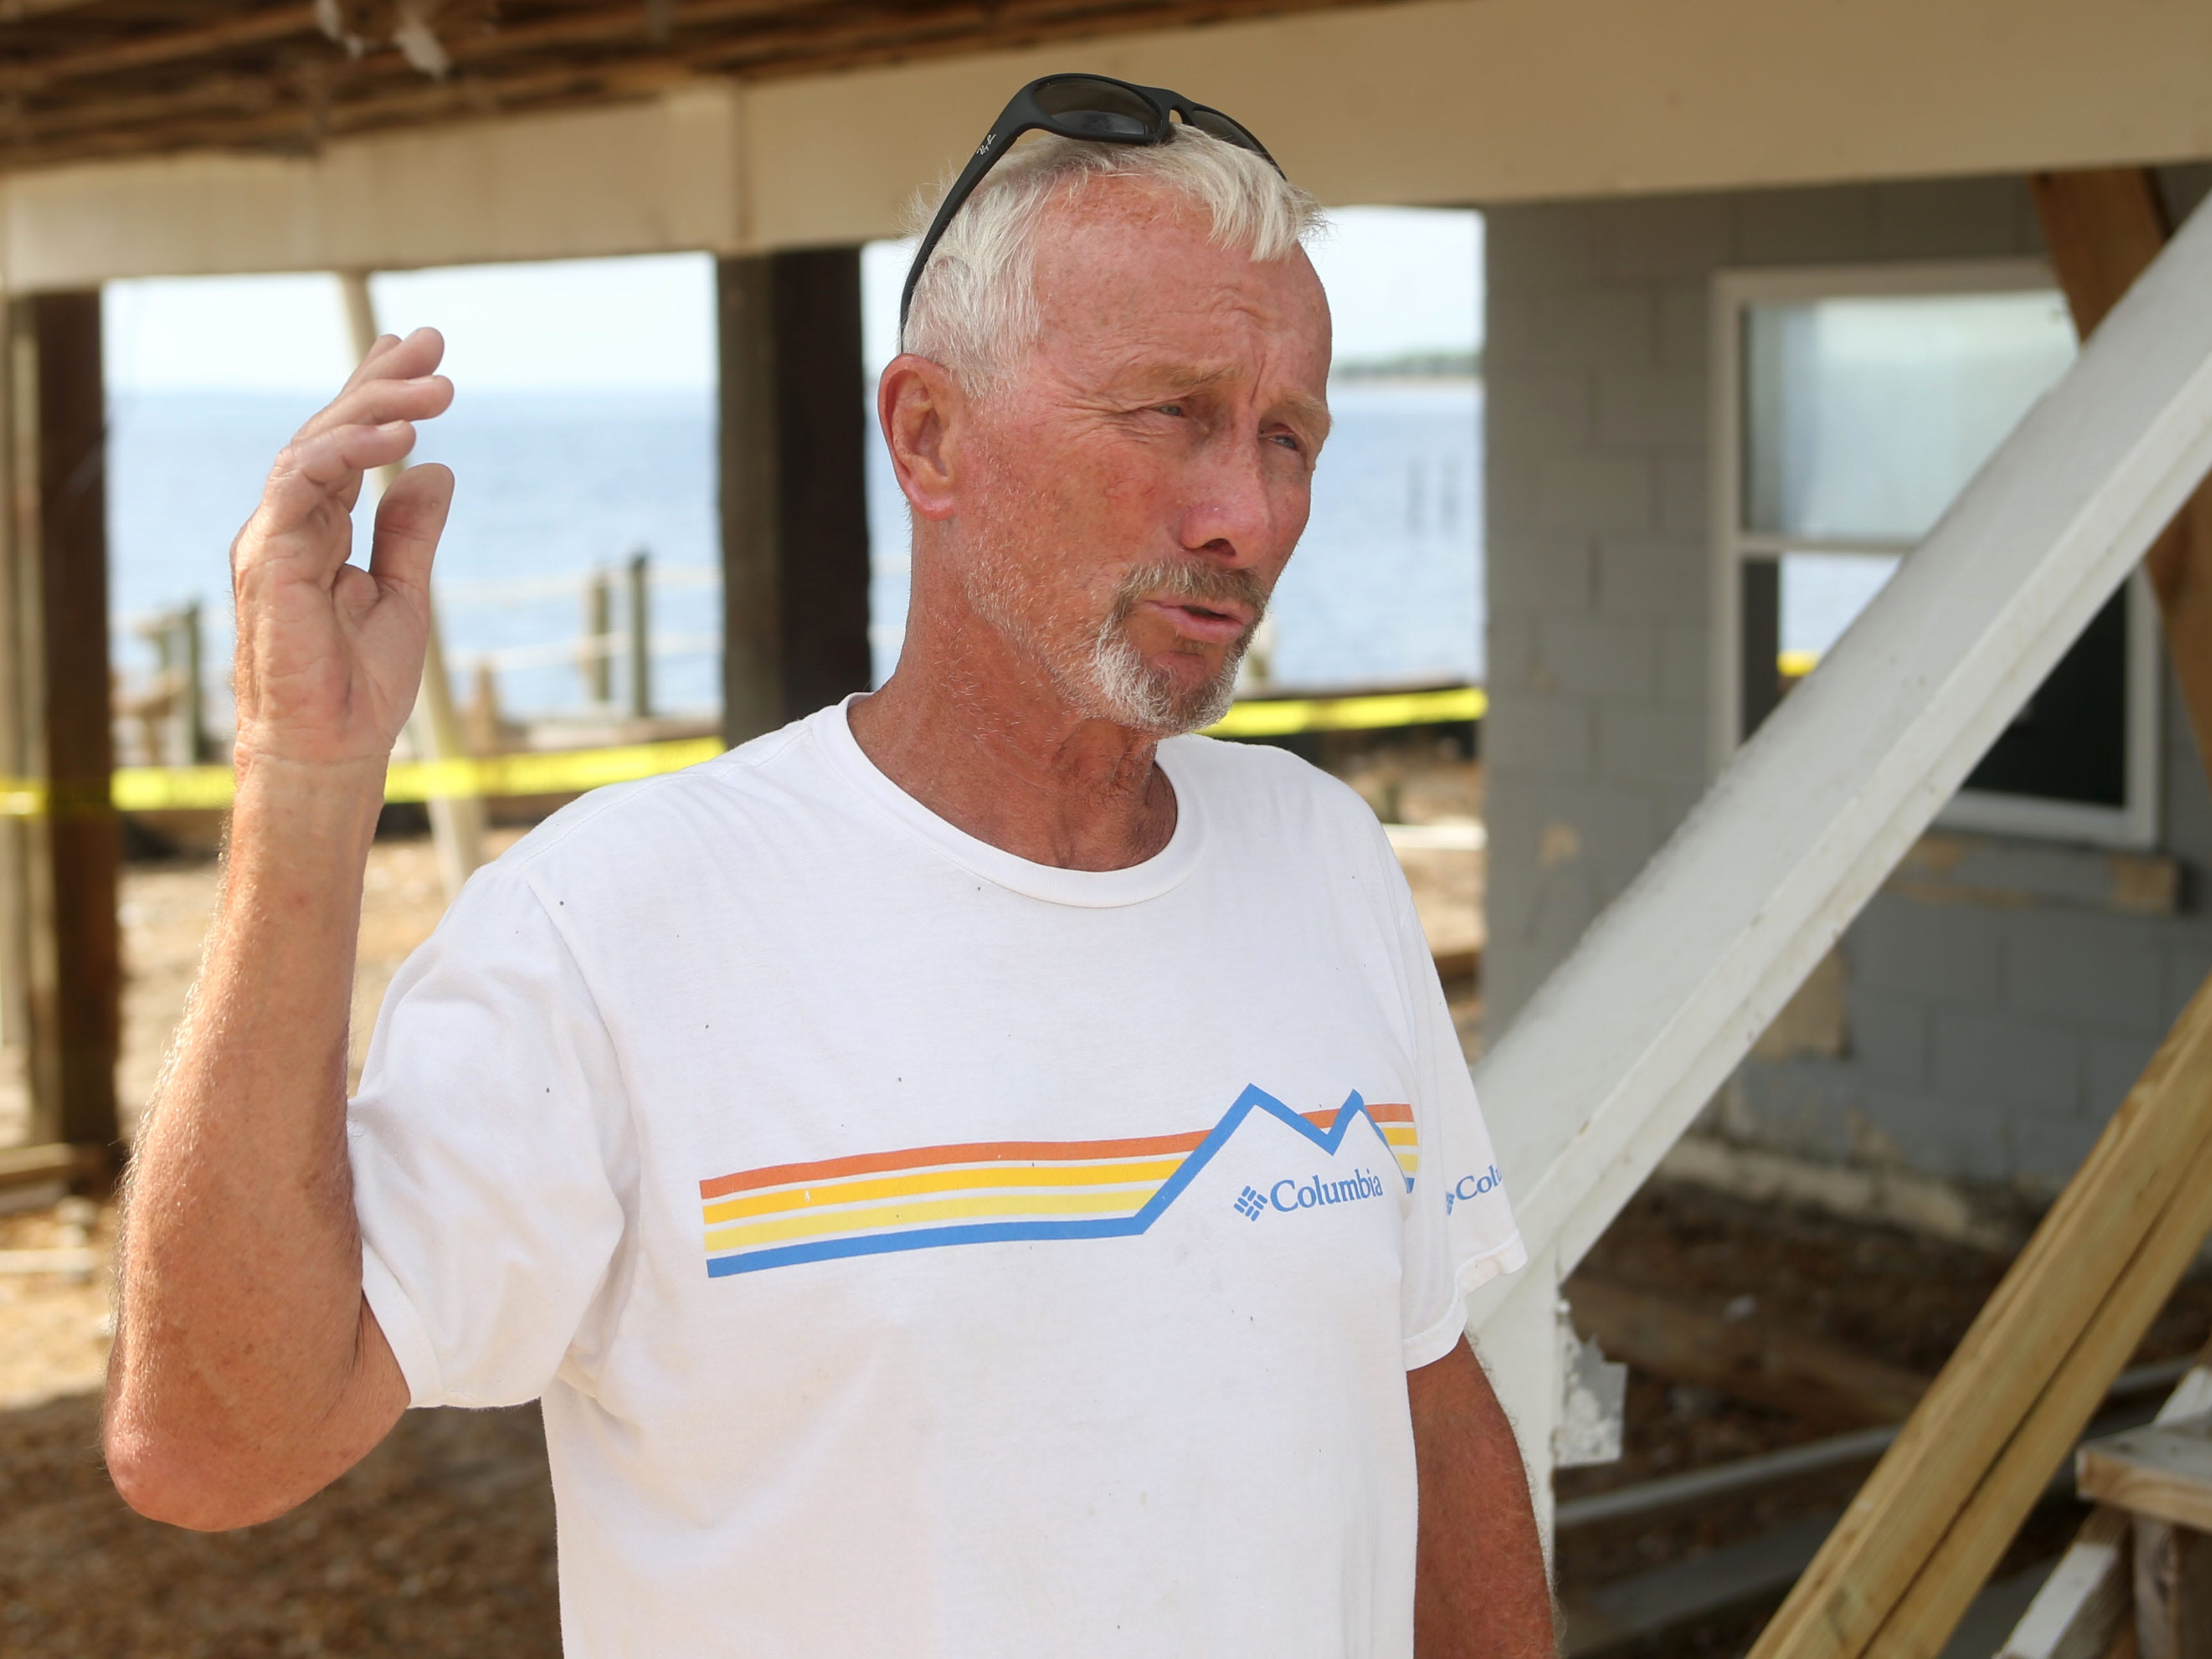 Doug Fordham speaks about his experience in Carrabelle Beach after Hurricane Michael on Monday, Oct. 15, 2018.